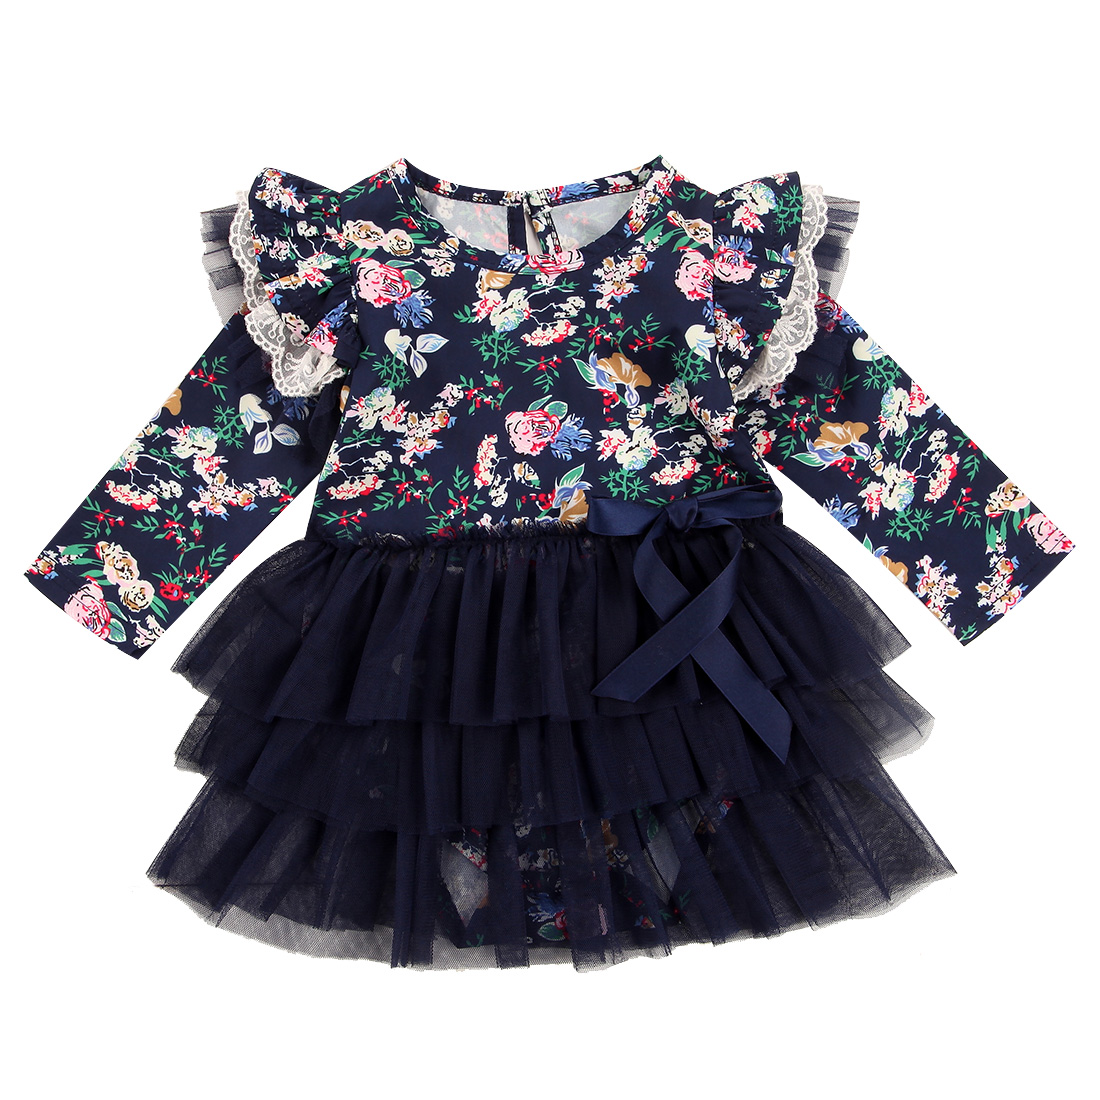 Fashion Newborn Baby Girls Clothes Floral Tutu Dress Romper Outfit Infant Baby Long Sleeve Dresses For Girls